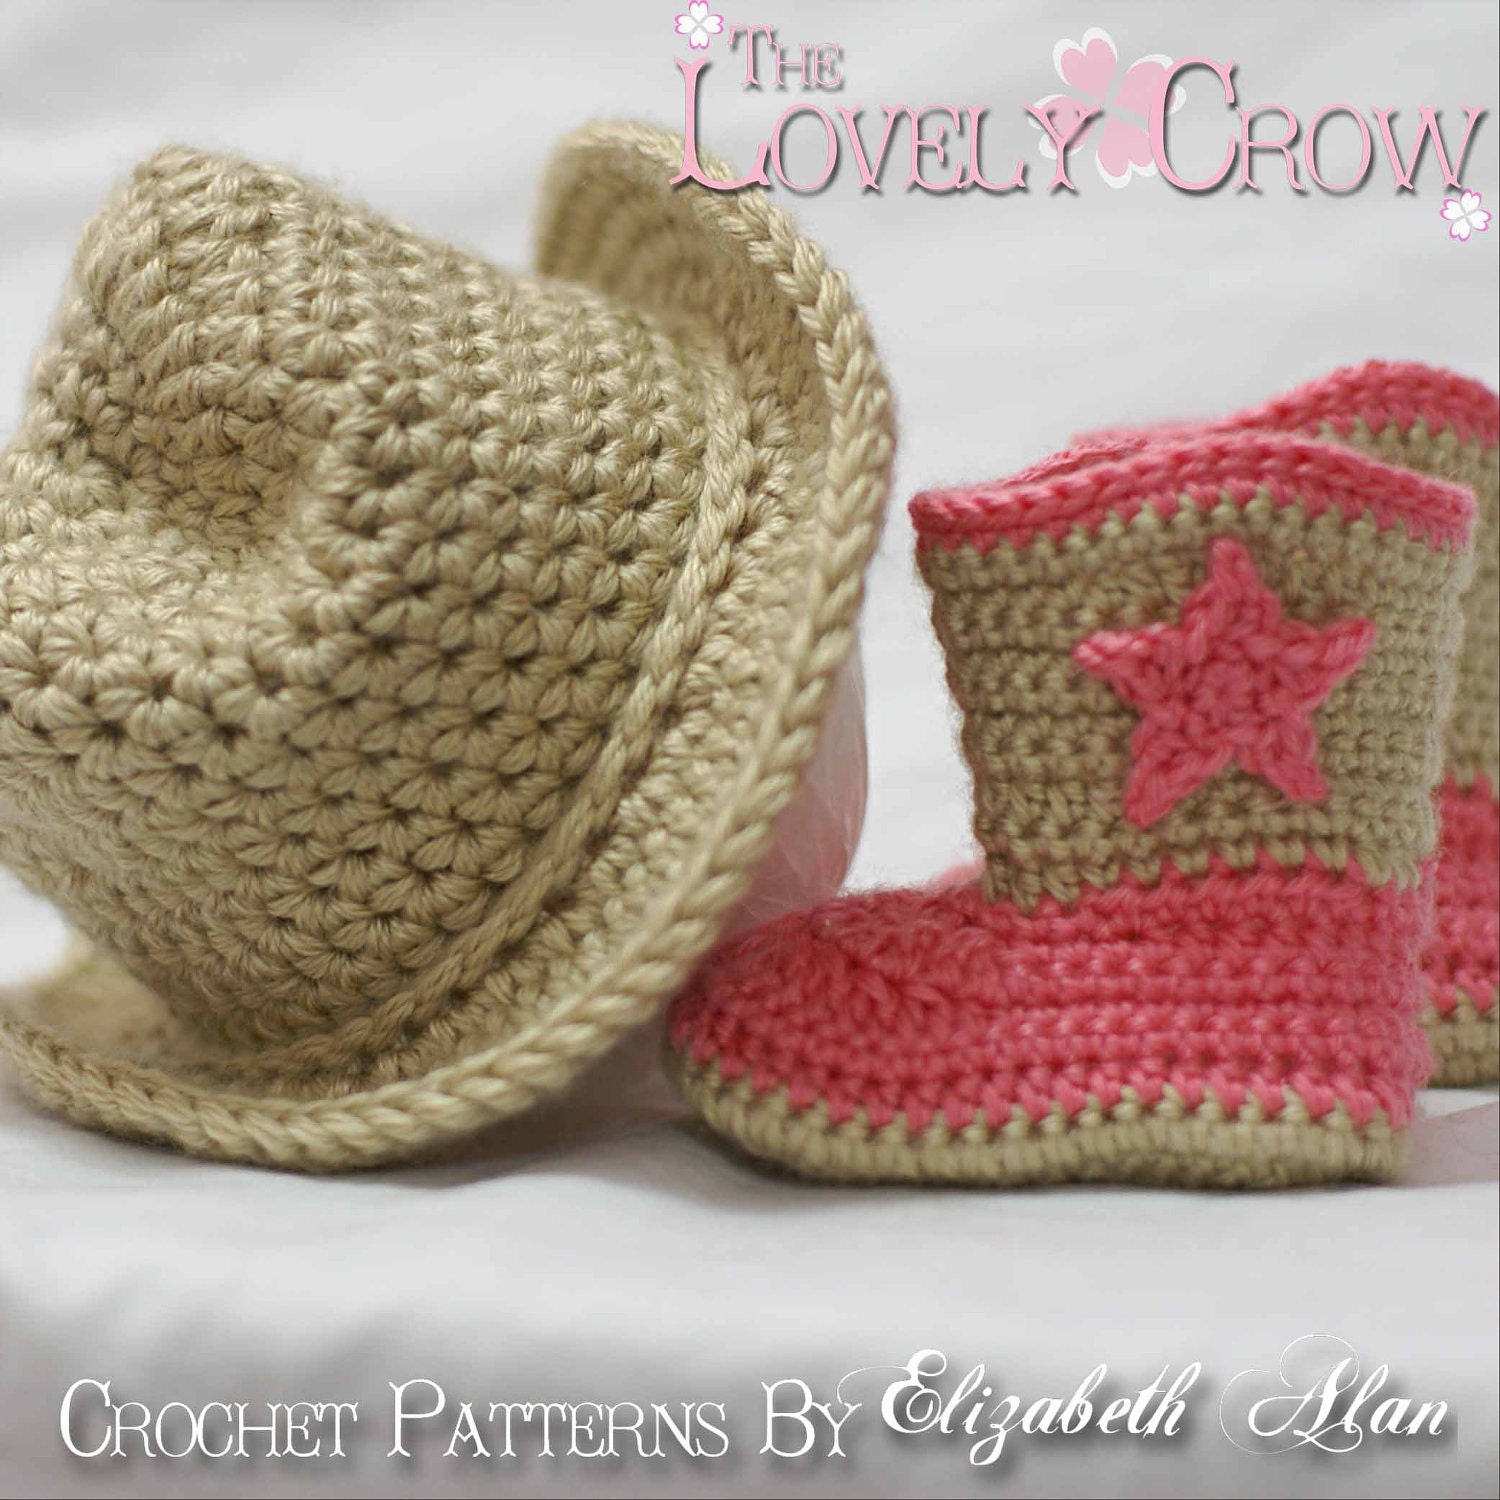 Cowboy Crochet Patterns. Includes patterns for Boot